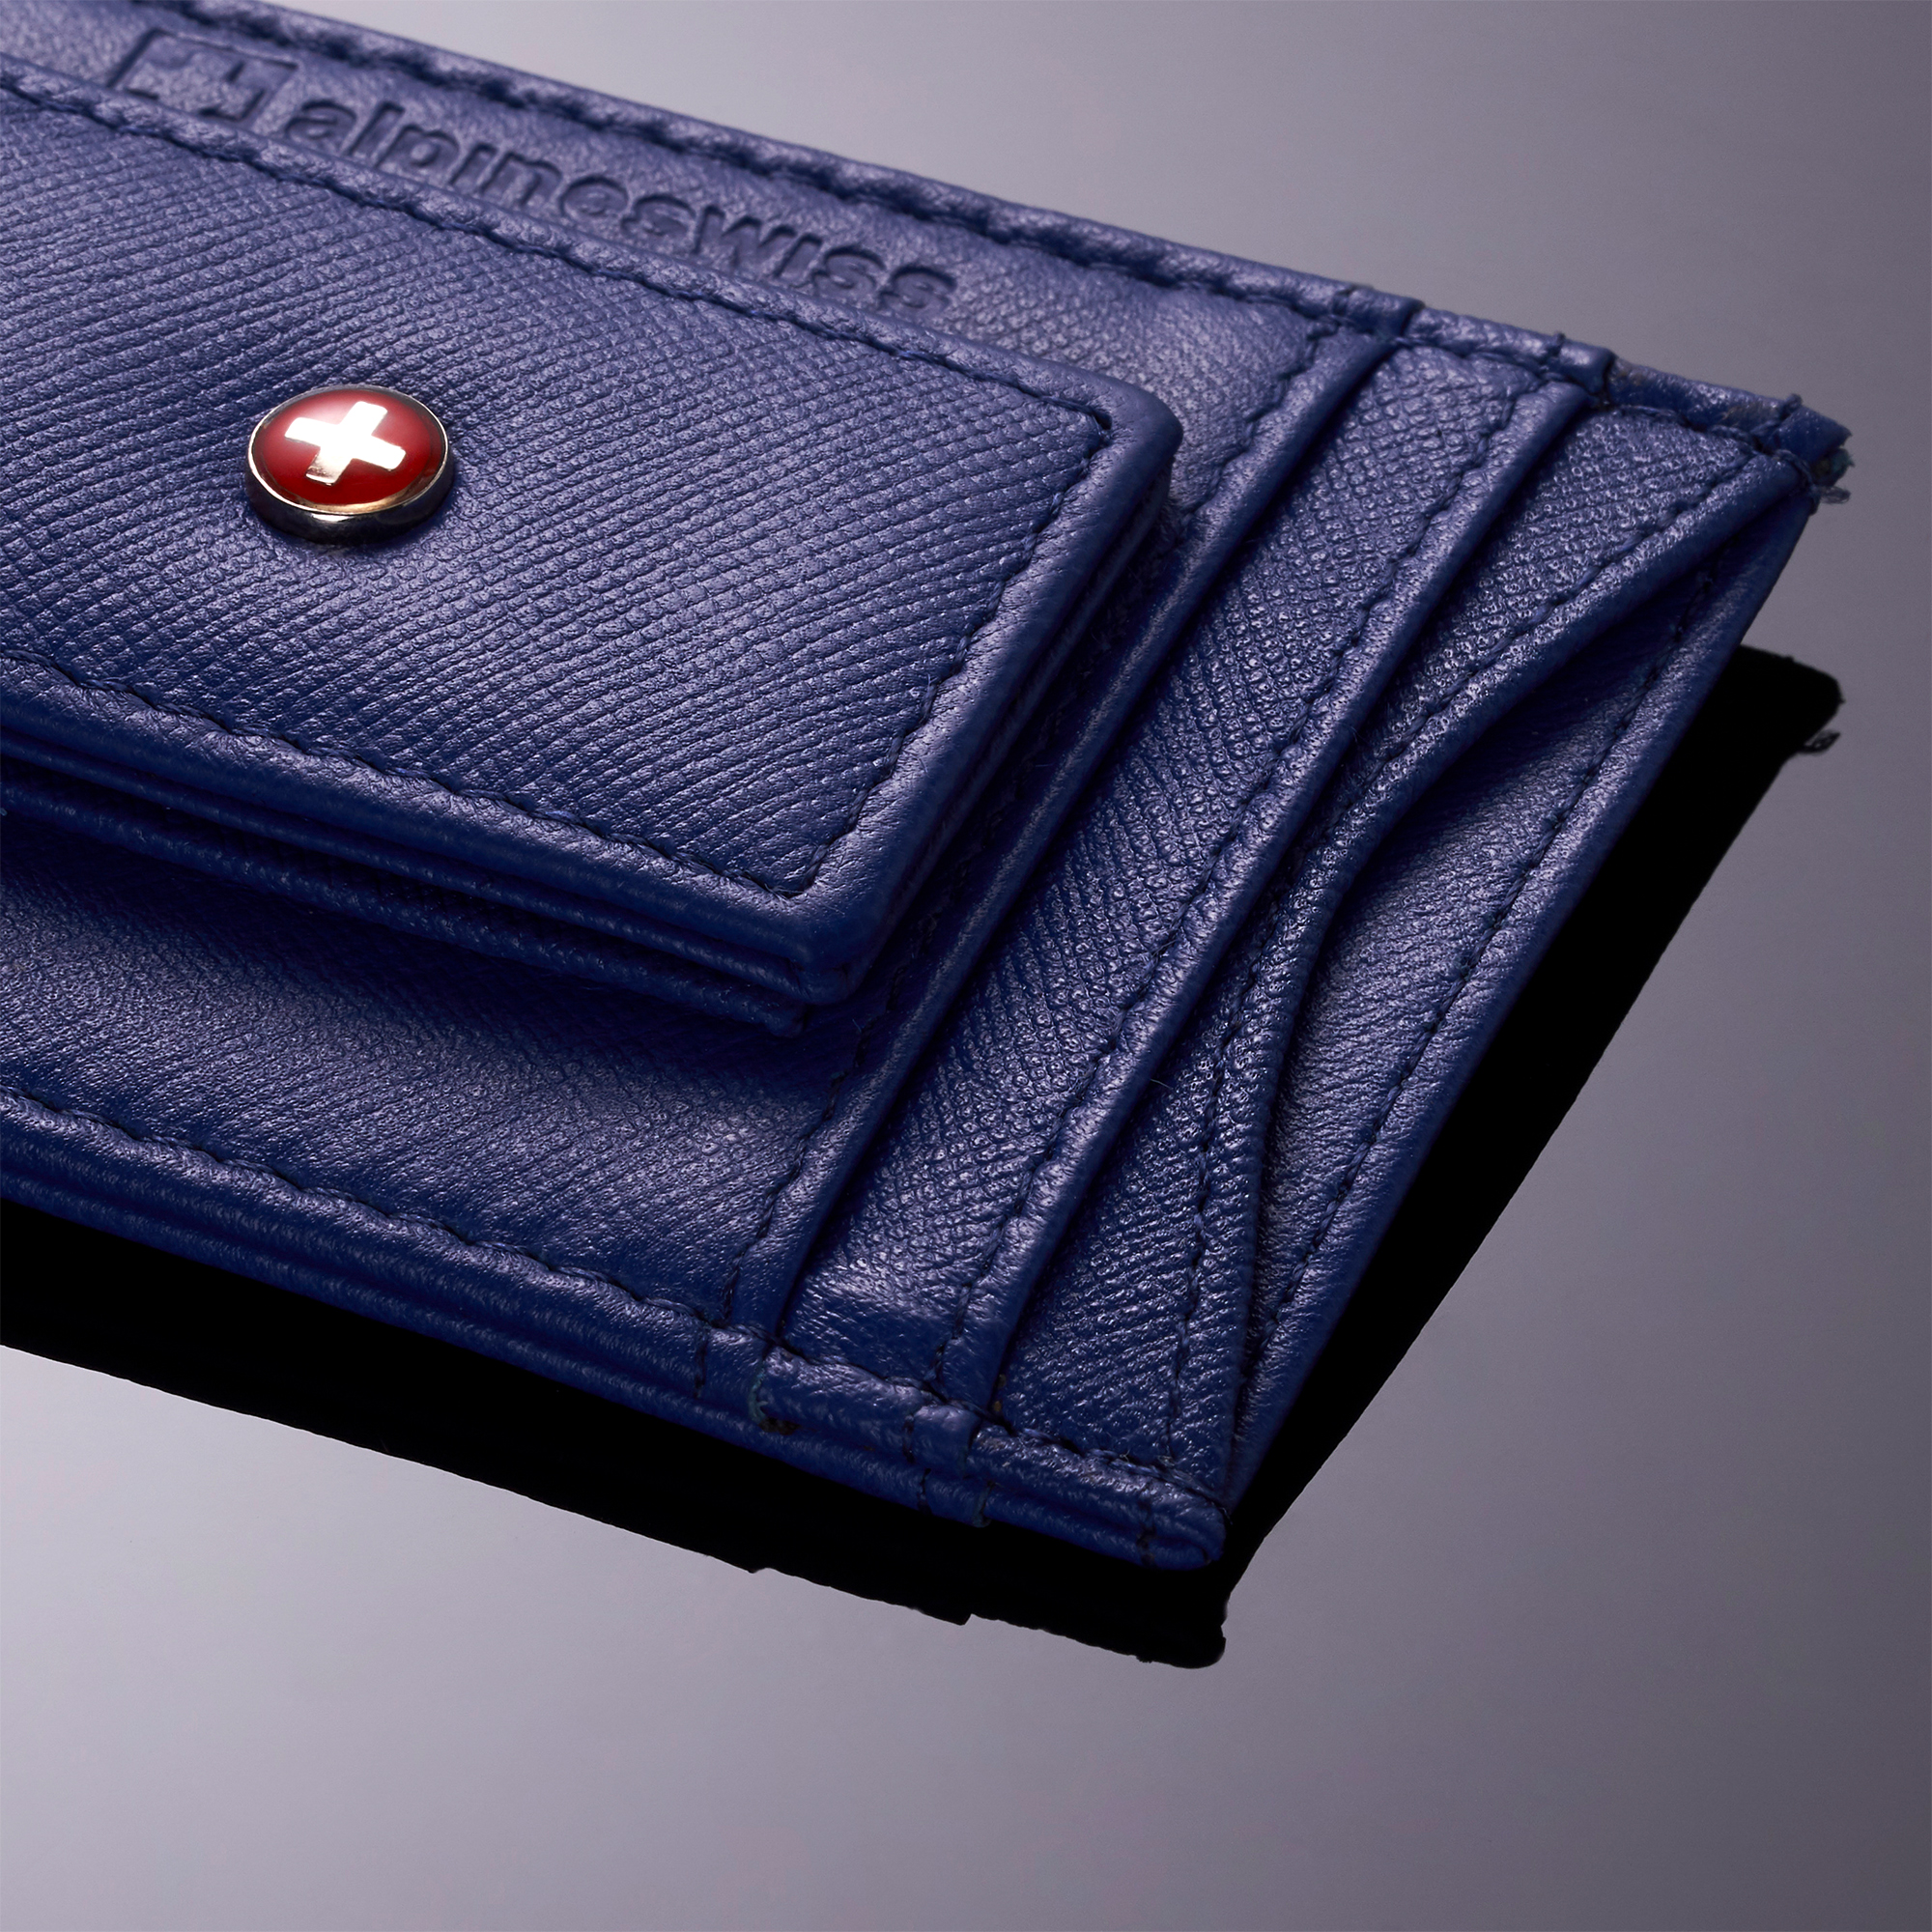 AlpineSwiss-Mens-Leather-Money-Clip-Magnet-Front-Pocket-Wallet-Slim-ID-Card-Case thumbnail 52